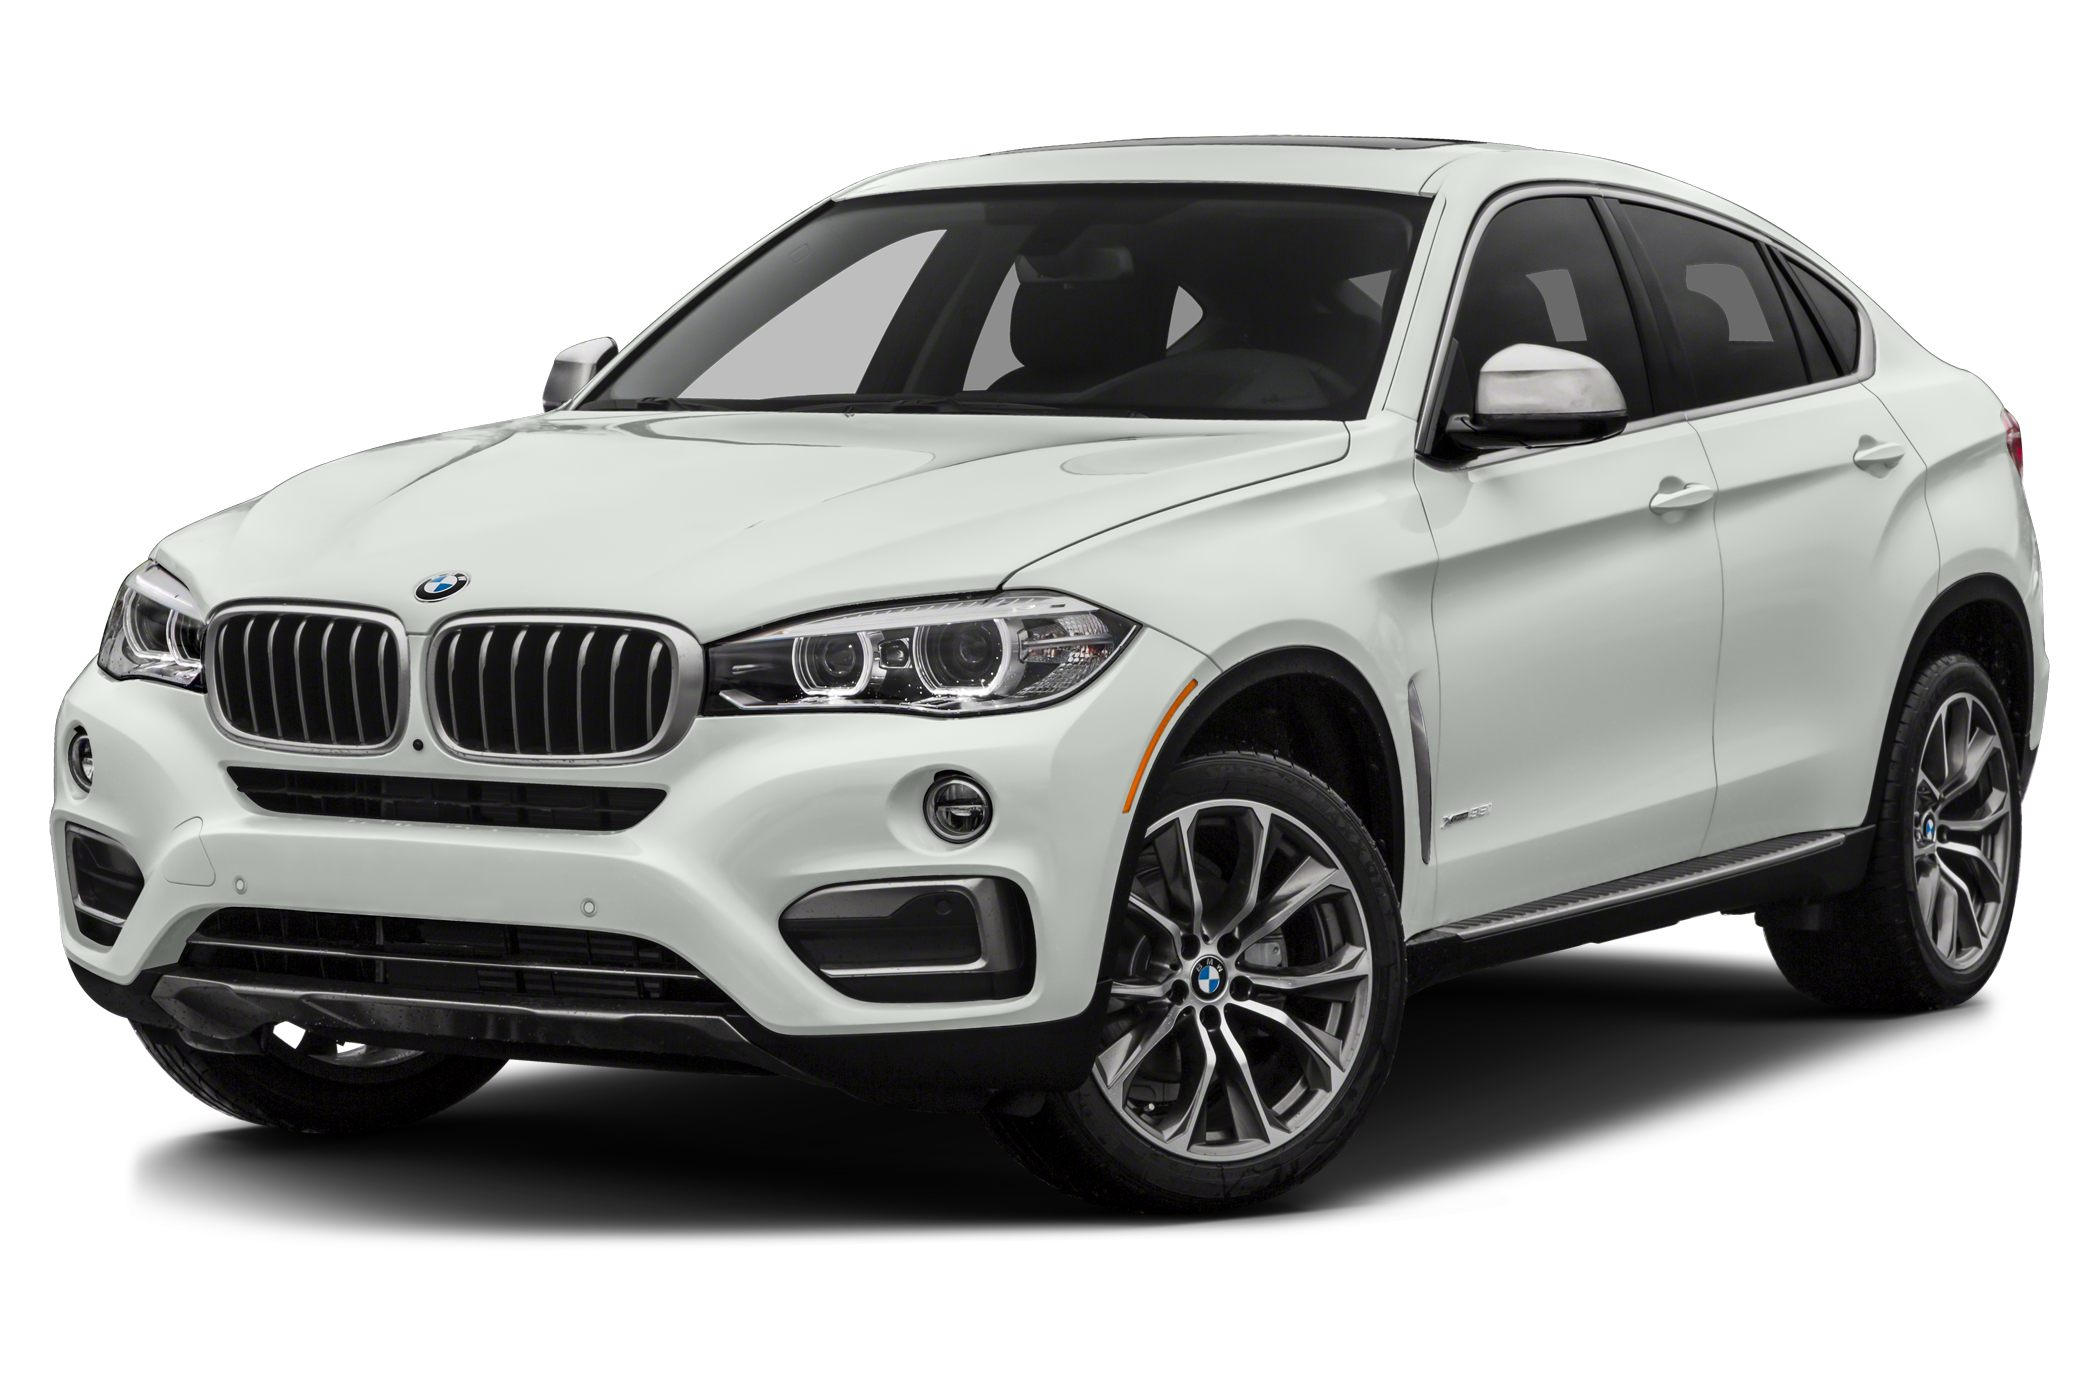 BMW X6 News, Photos and Buying Information - Autoblog